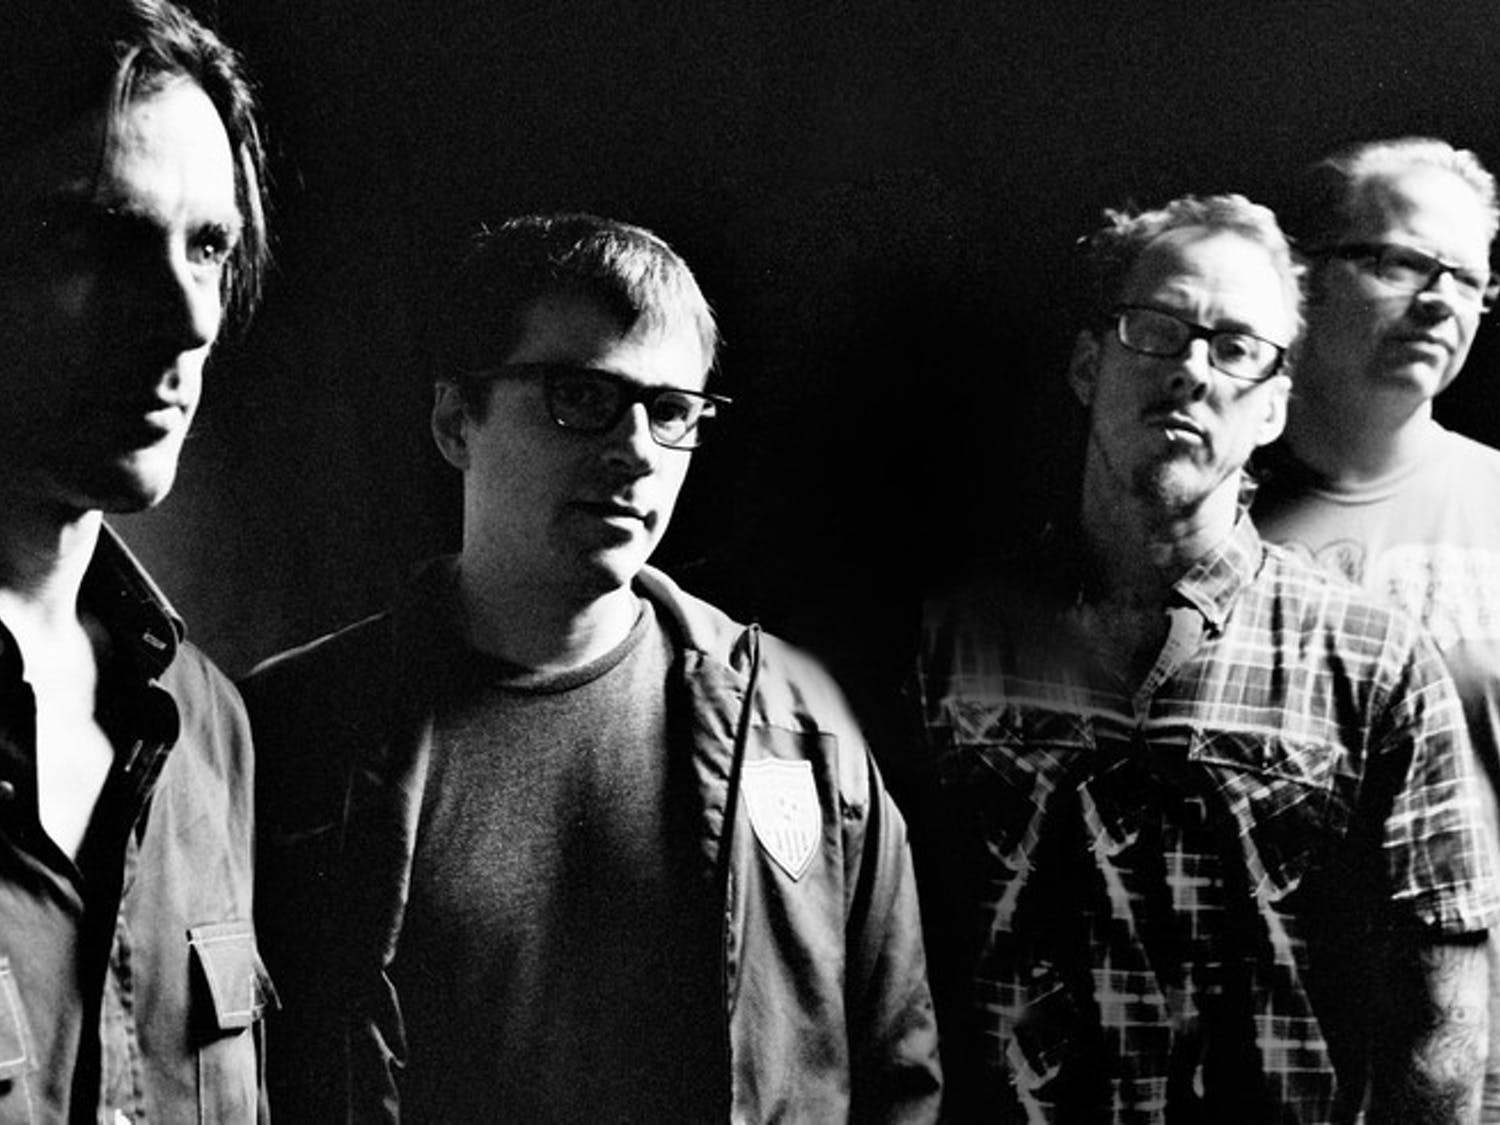 """Weezer's new album, """"Weezer (White Album),"""" stays true to their original grunge-rock sound and does not attempt to adapt or reinvent the band."""